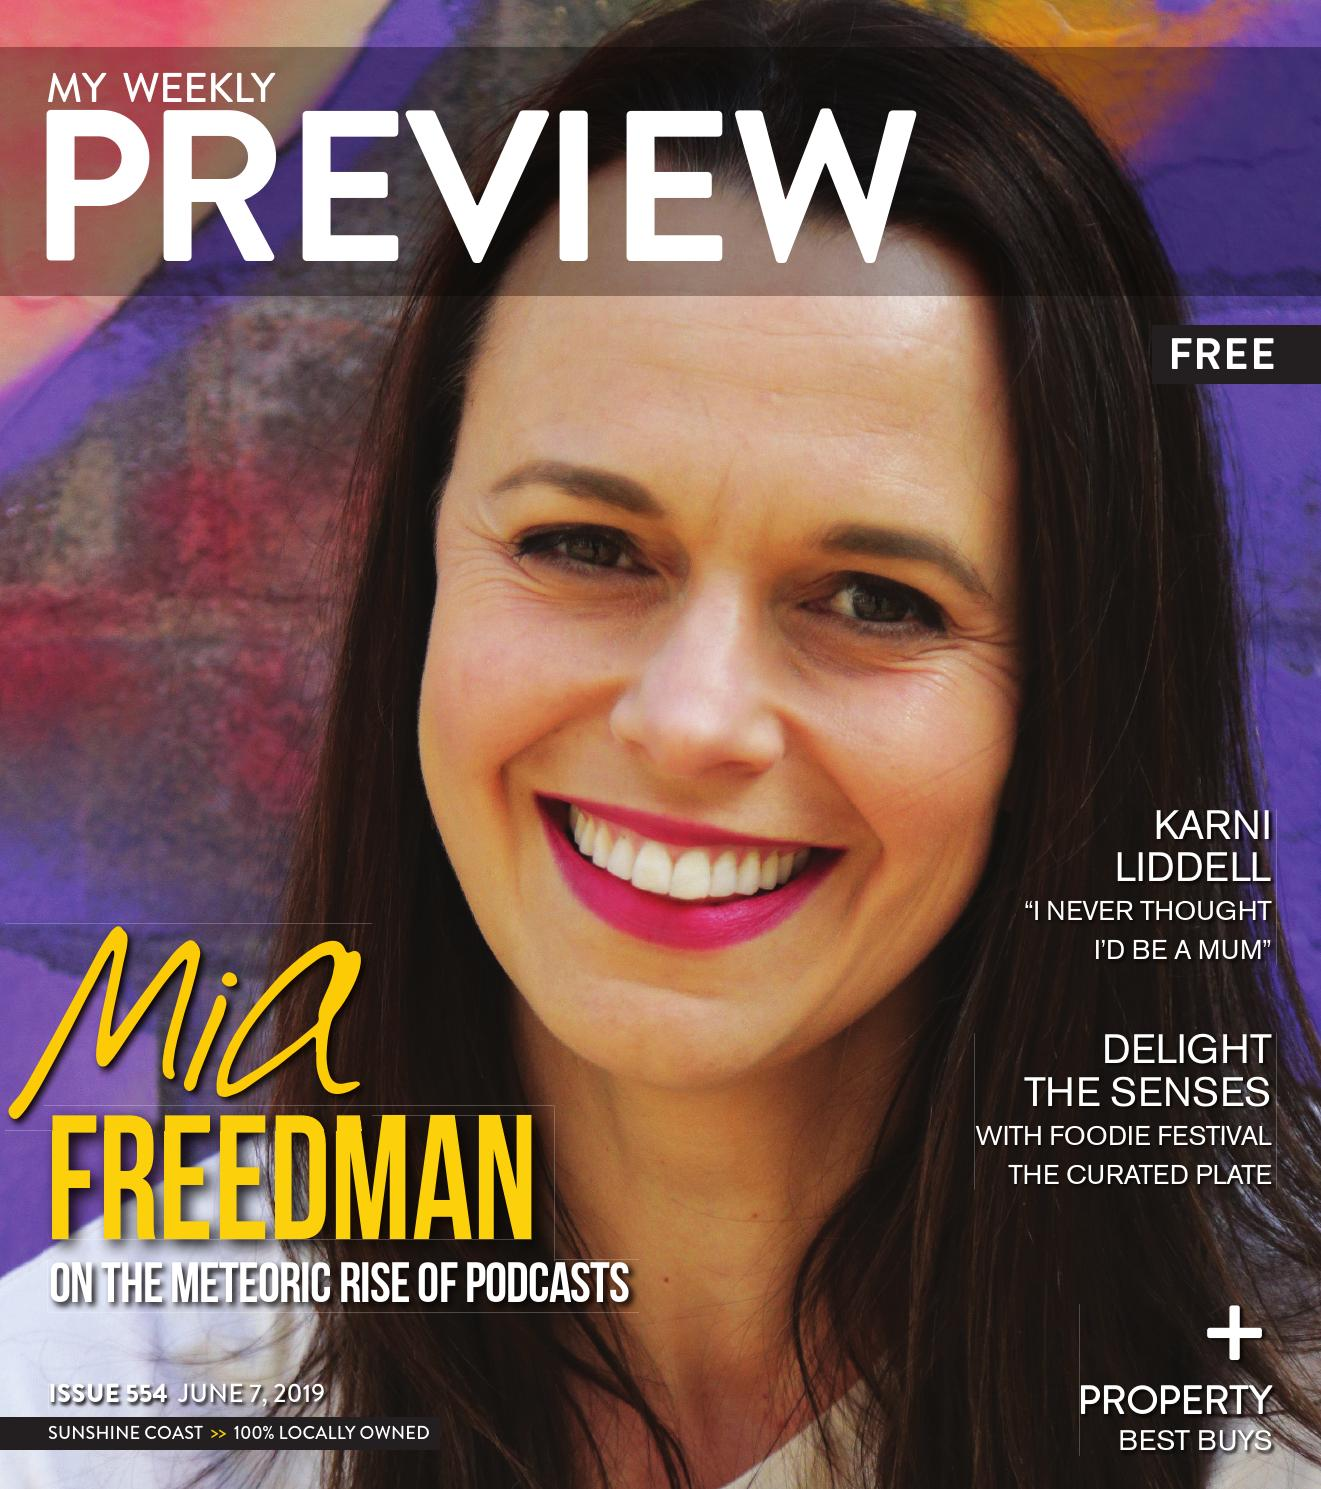 My Weekly Preview Issue 554 by My Weekly Preview - issuu